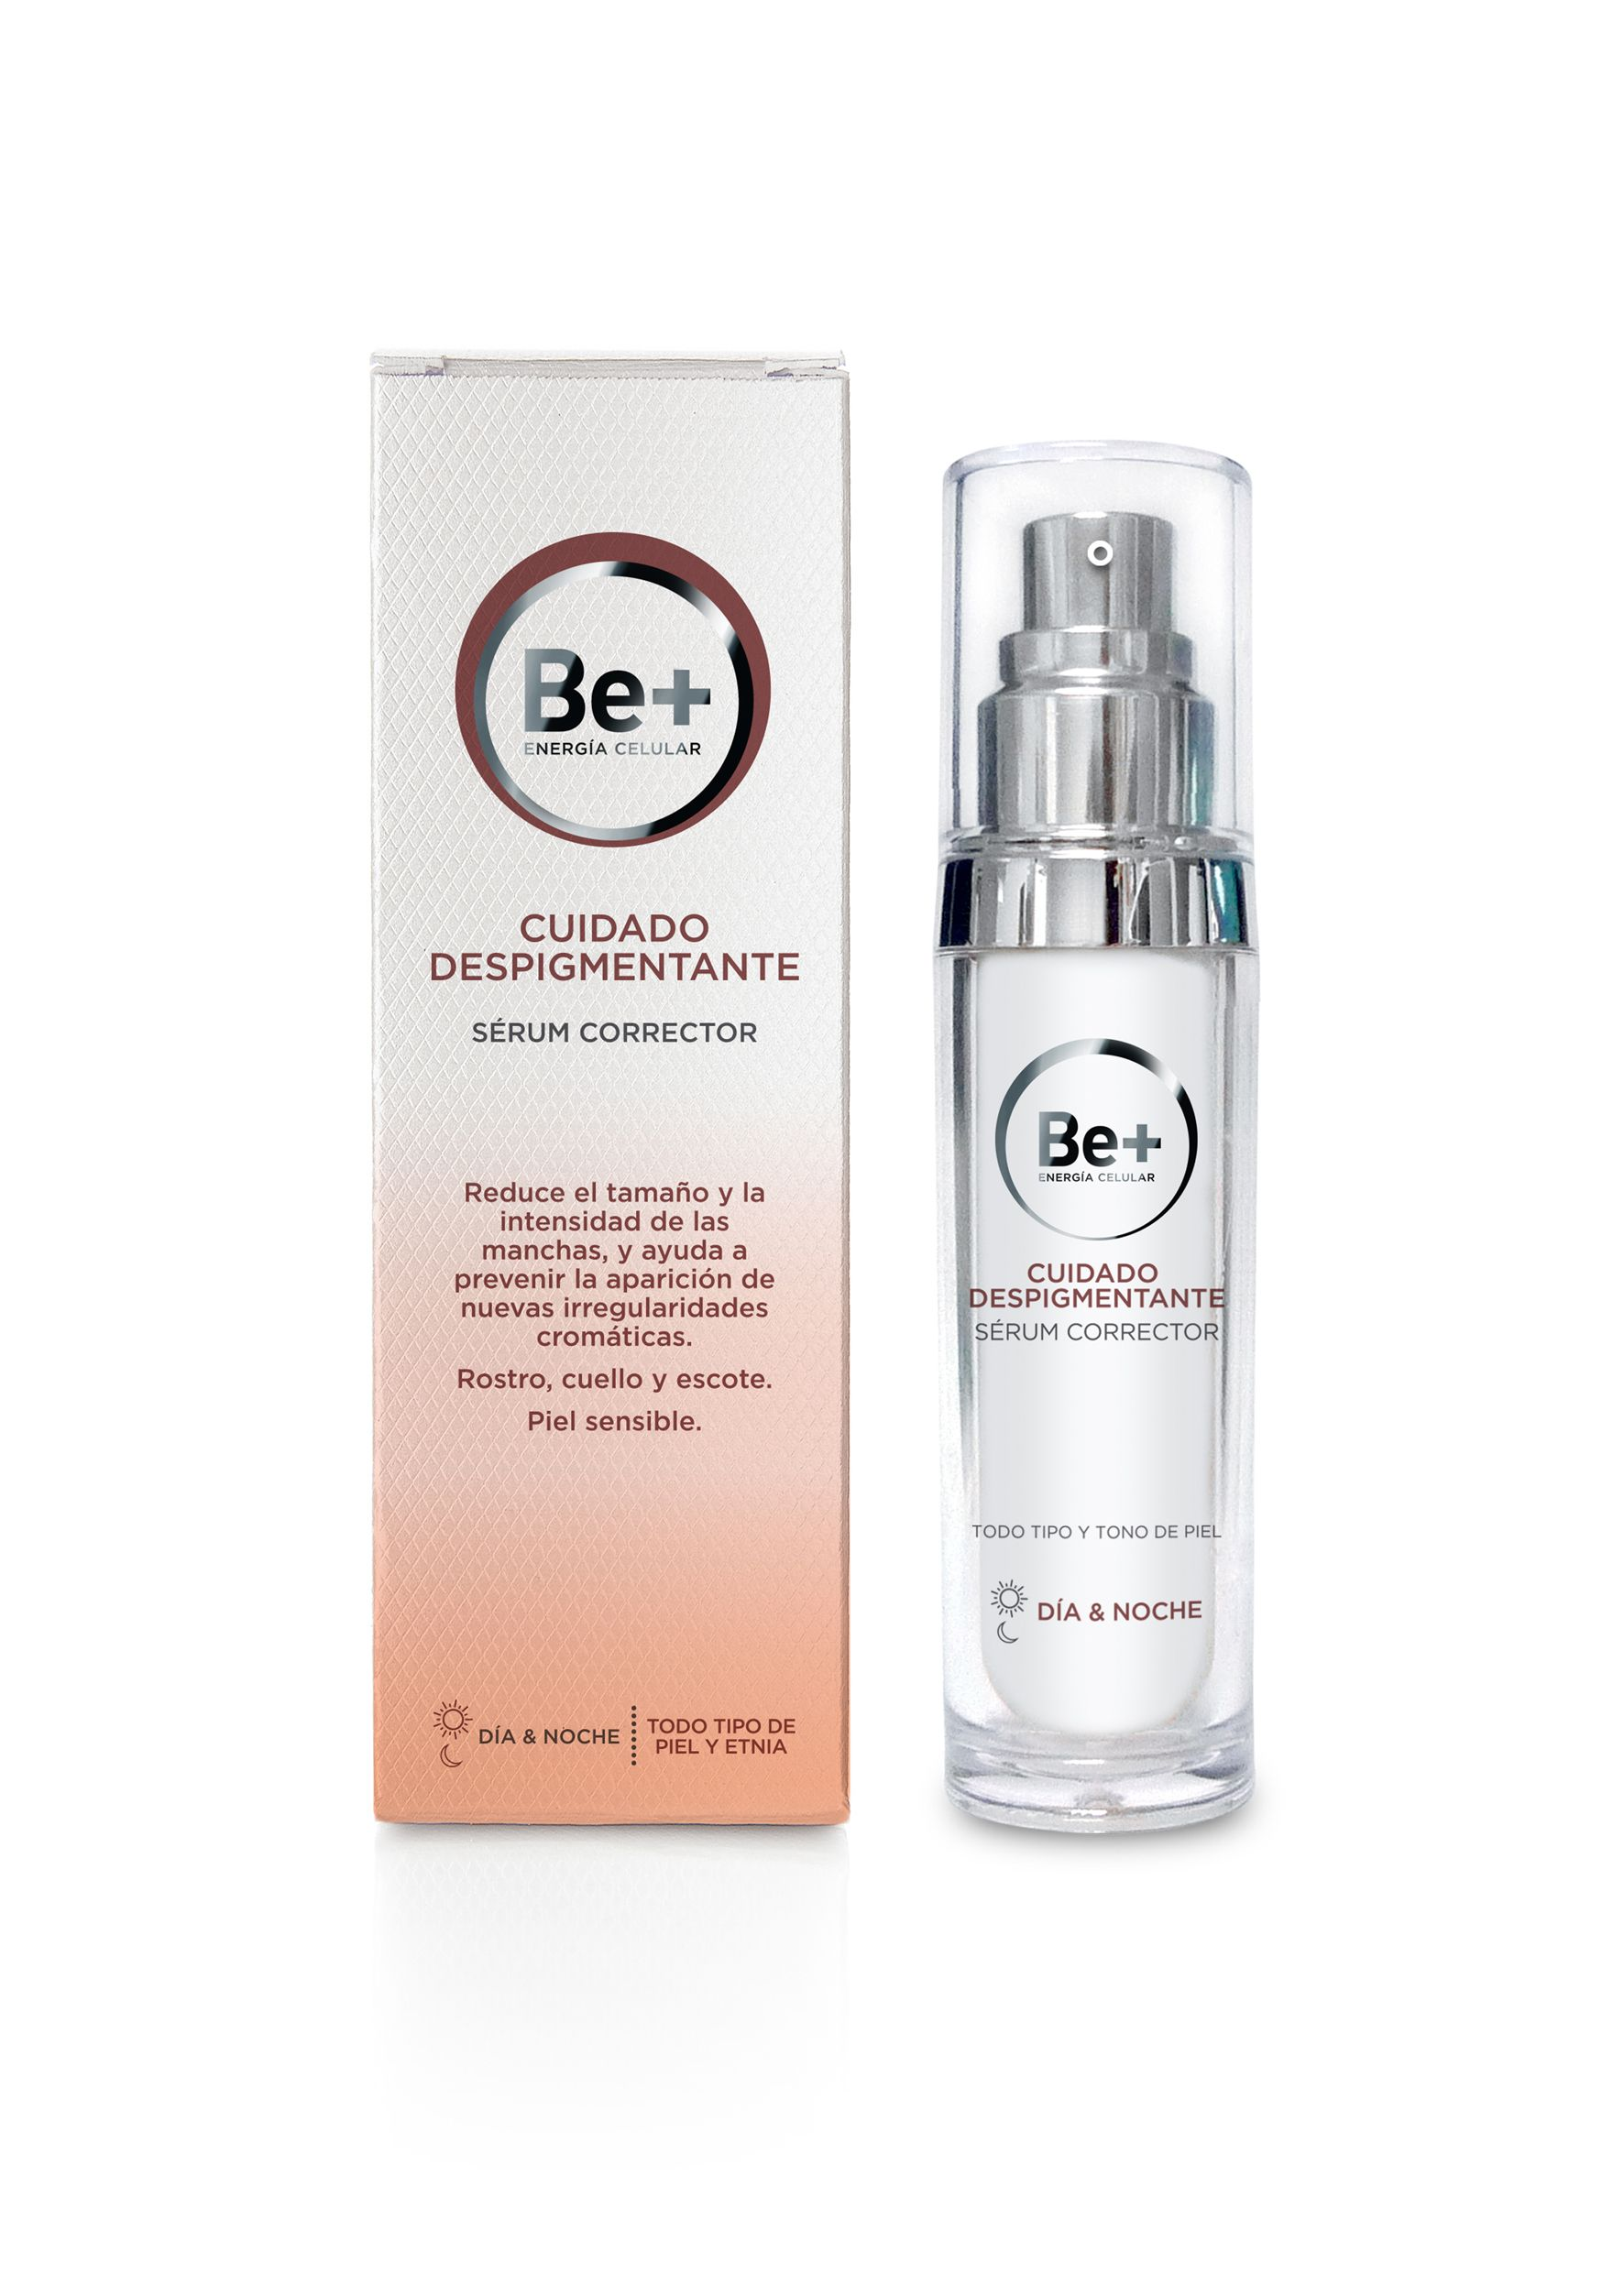 Be+ Serum despigmentante